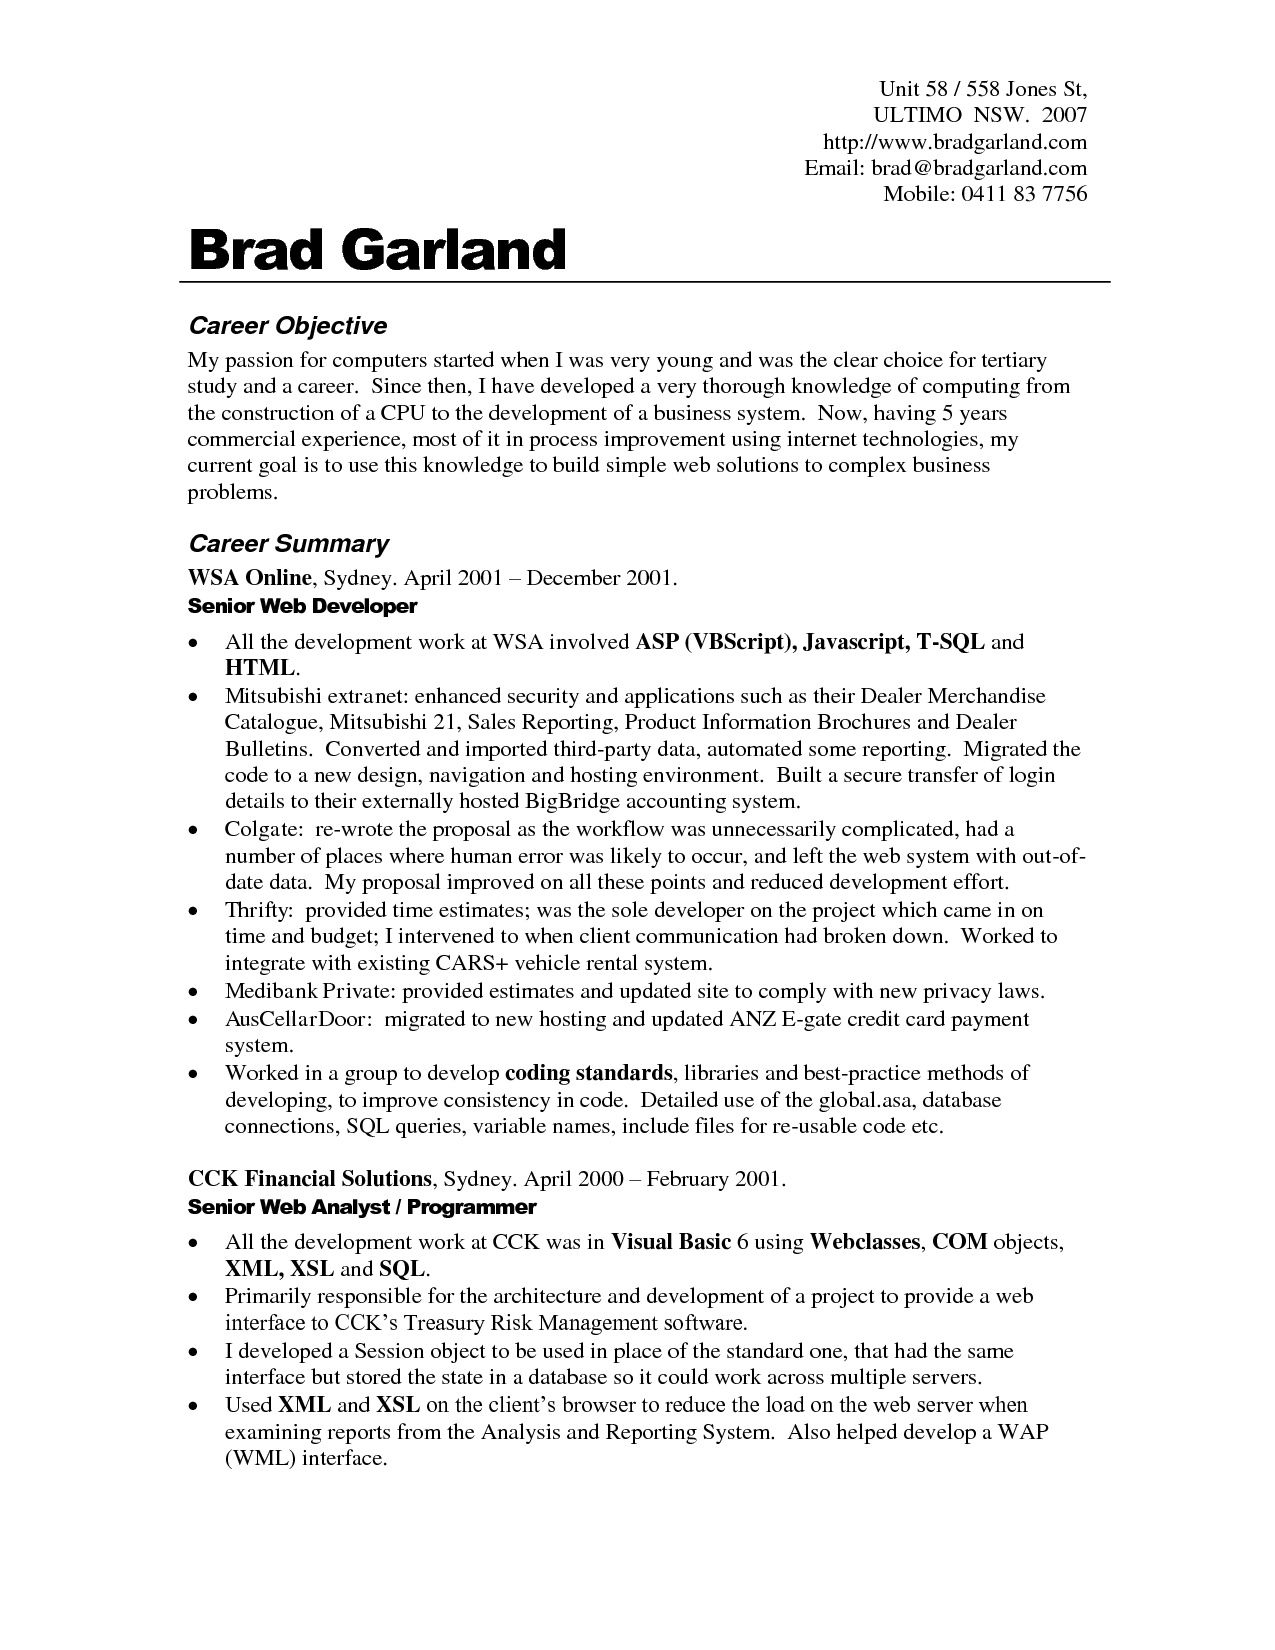 sample objectives in resume